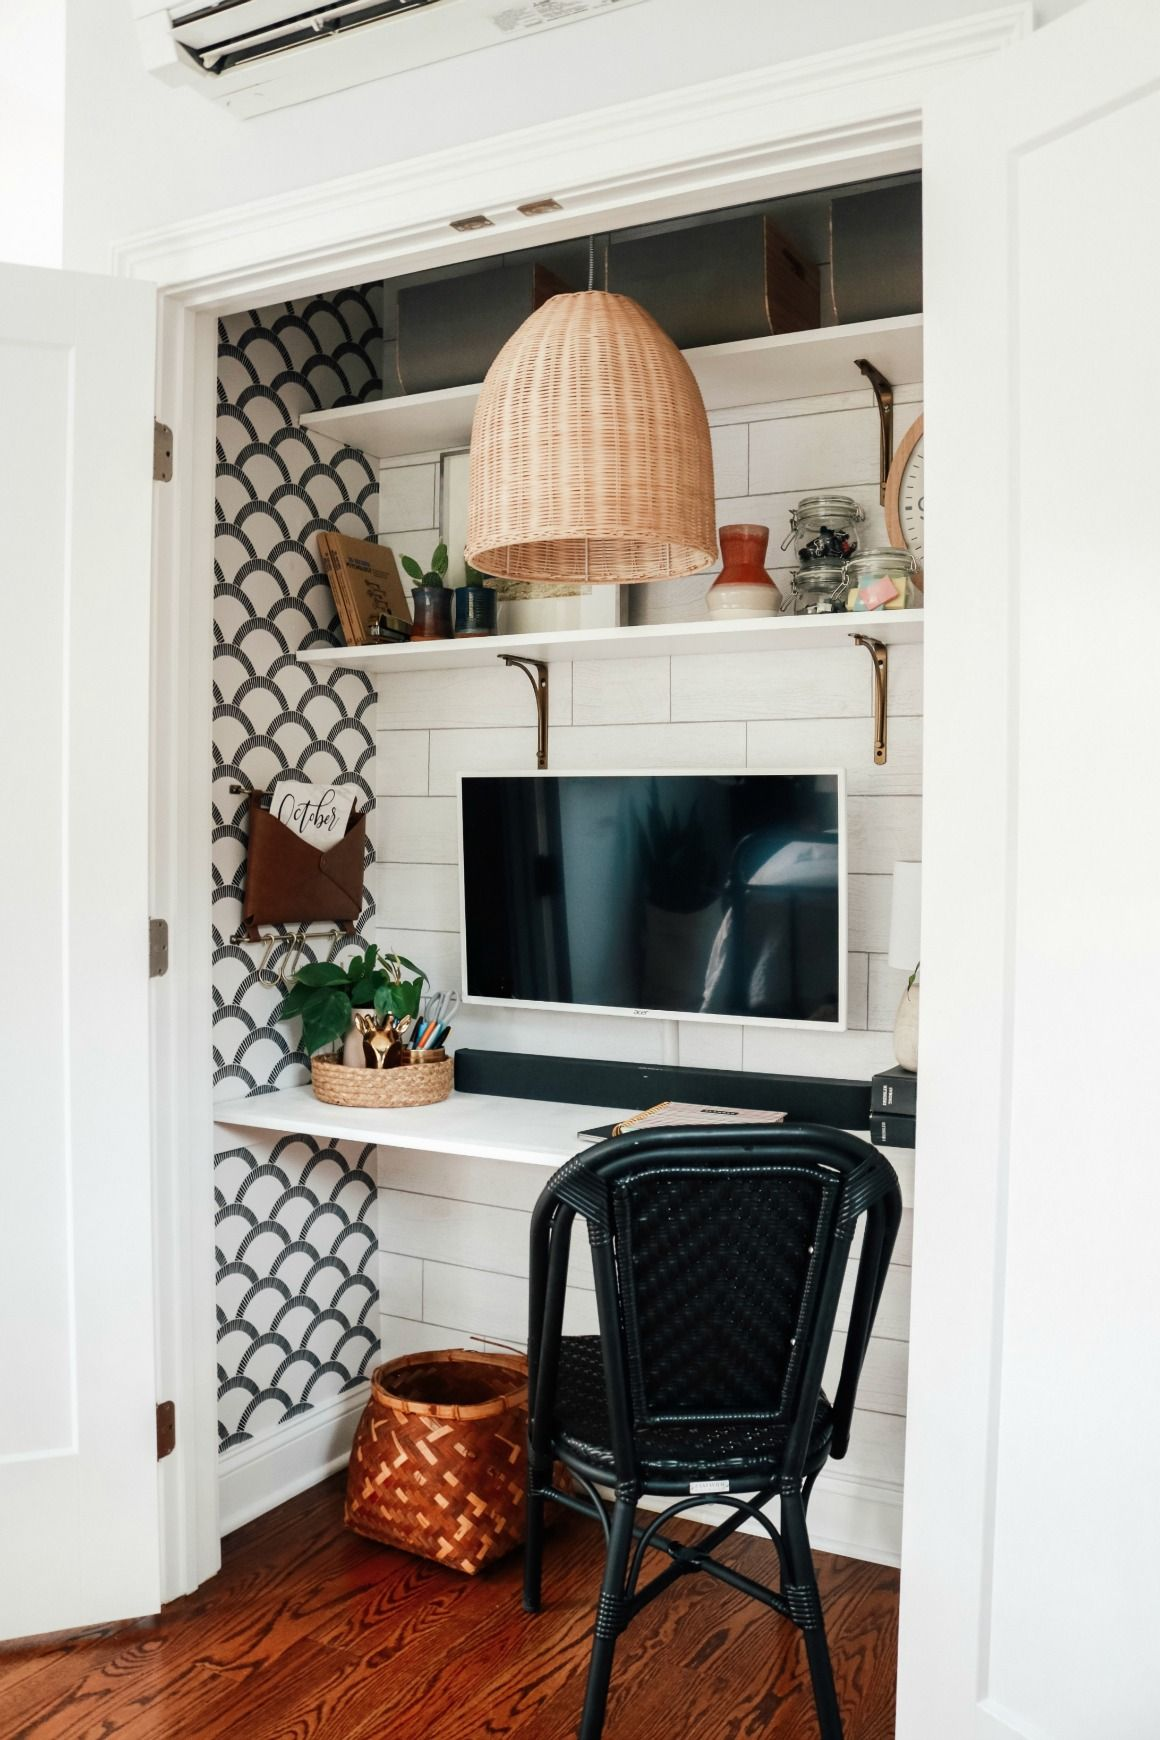 Cloffice Closet Turned Into An Office Small Space Hack Nesting With Grace Home Office Closet Home Office Decor Small Space Hacks